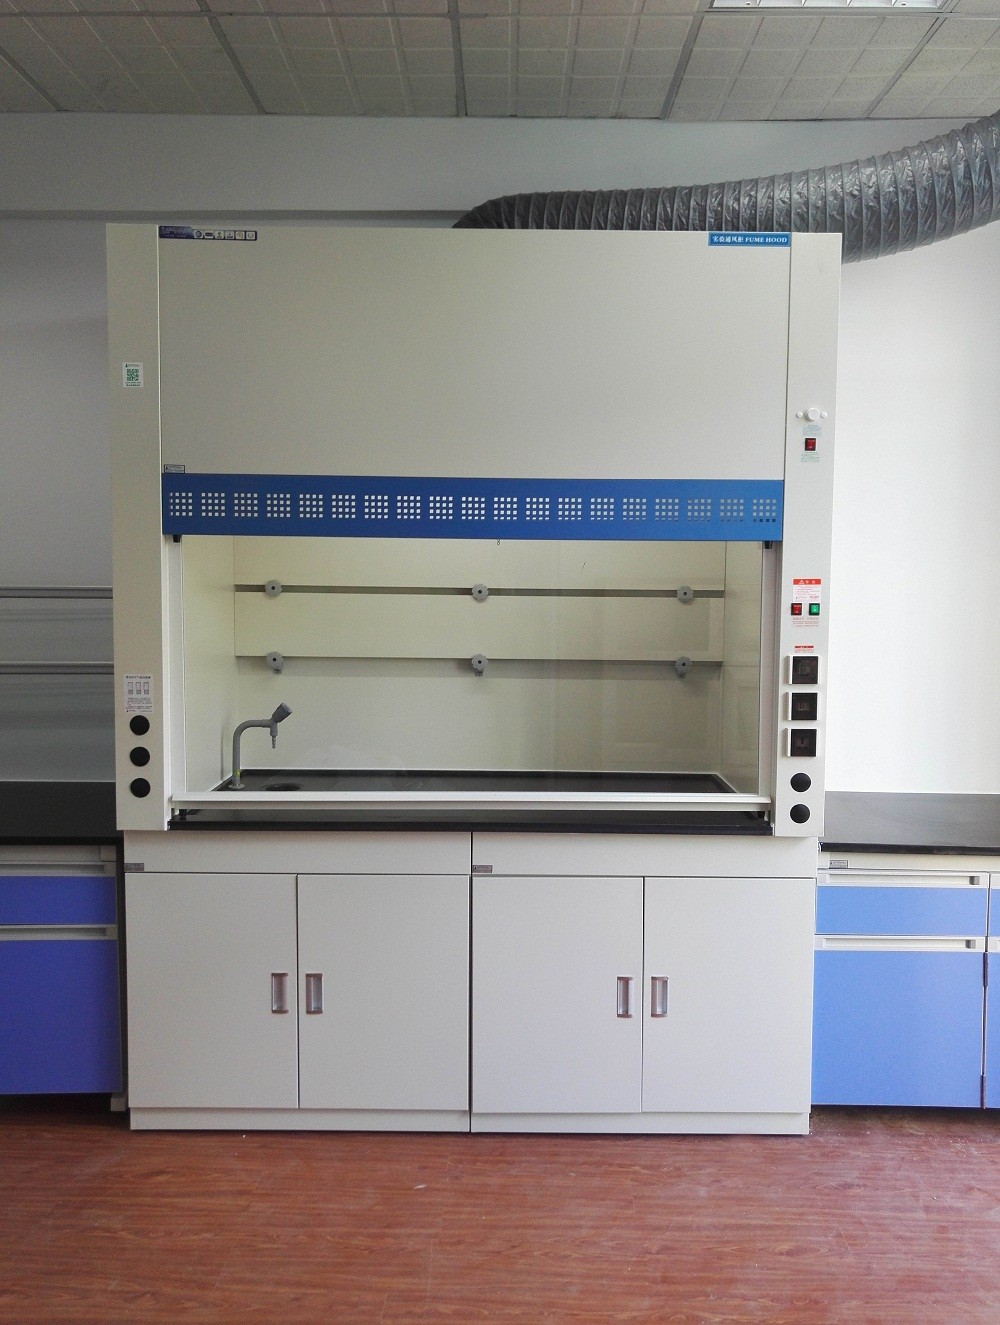 BH01-006- 2016 the new laboratory fume hood w/ water for inspection and testing center